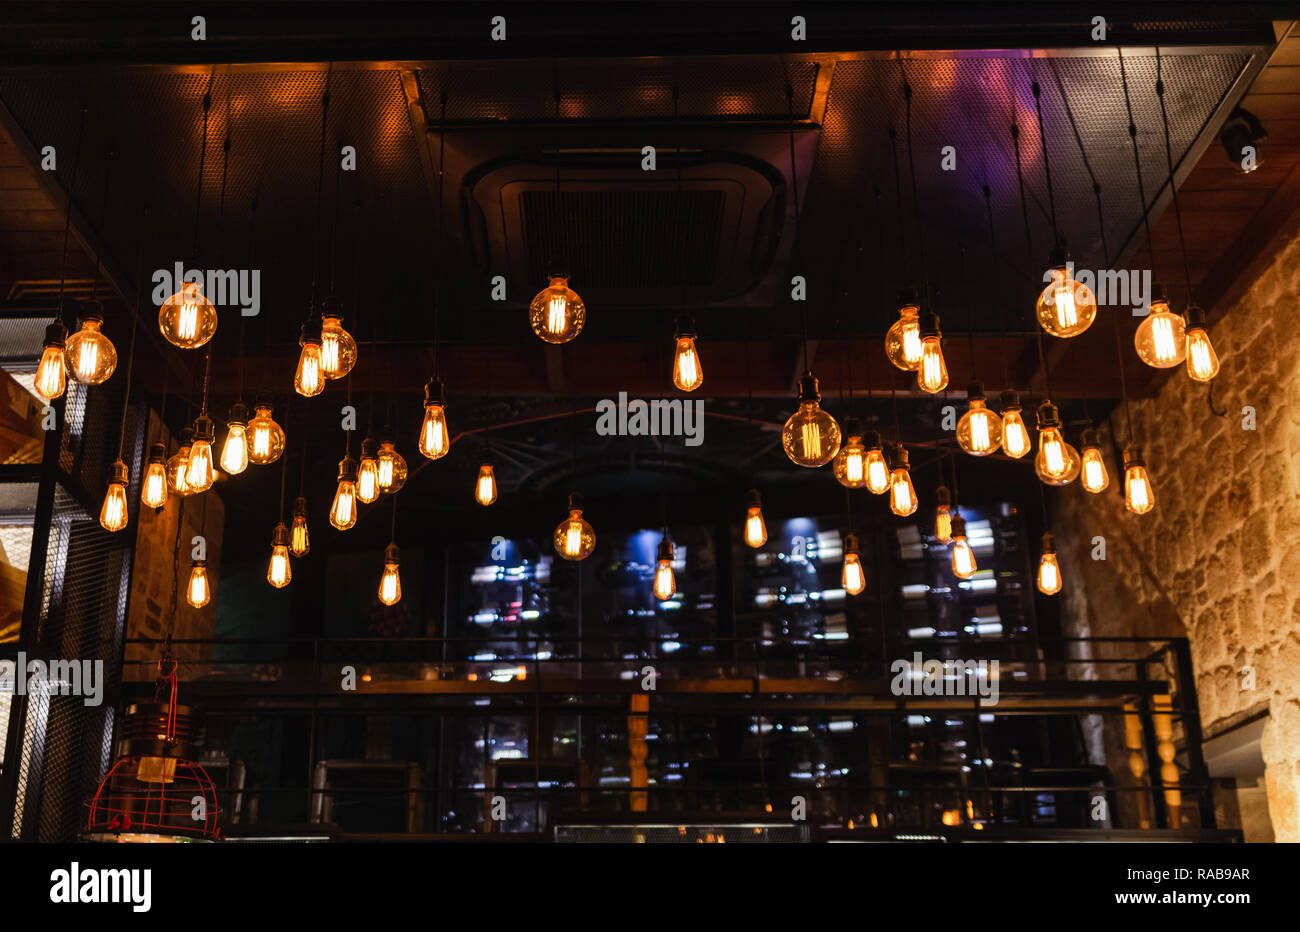 Many Electrical Lamps Bulbs Hanging From Ceiling At Restaurant Interior And Glowing In Darkness Dark Background Horizontal Color Photography Stock Photo Alamy